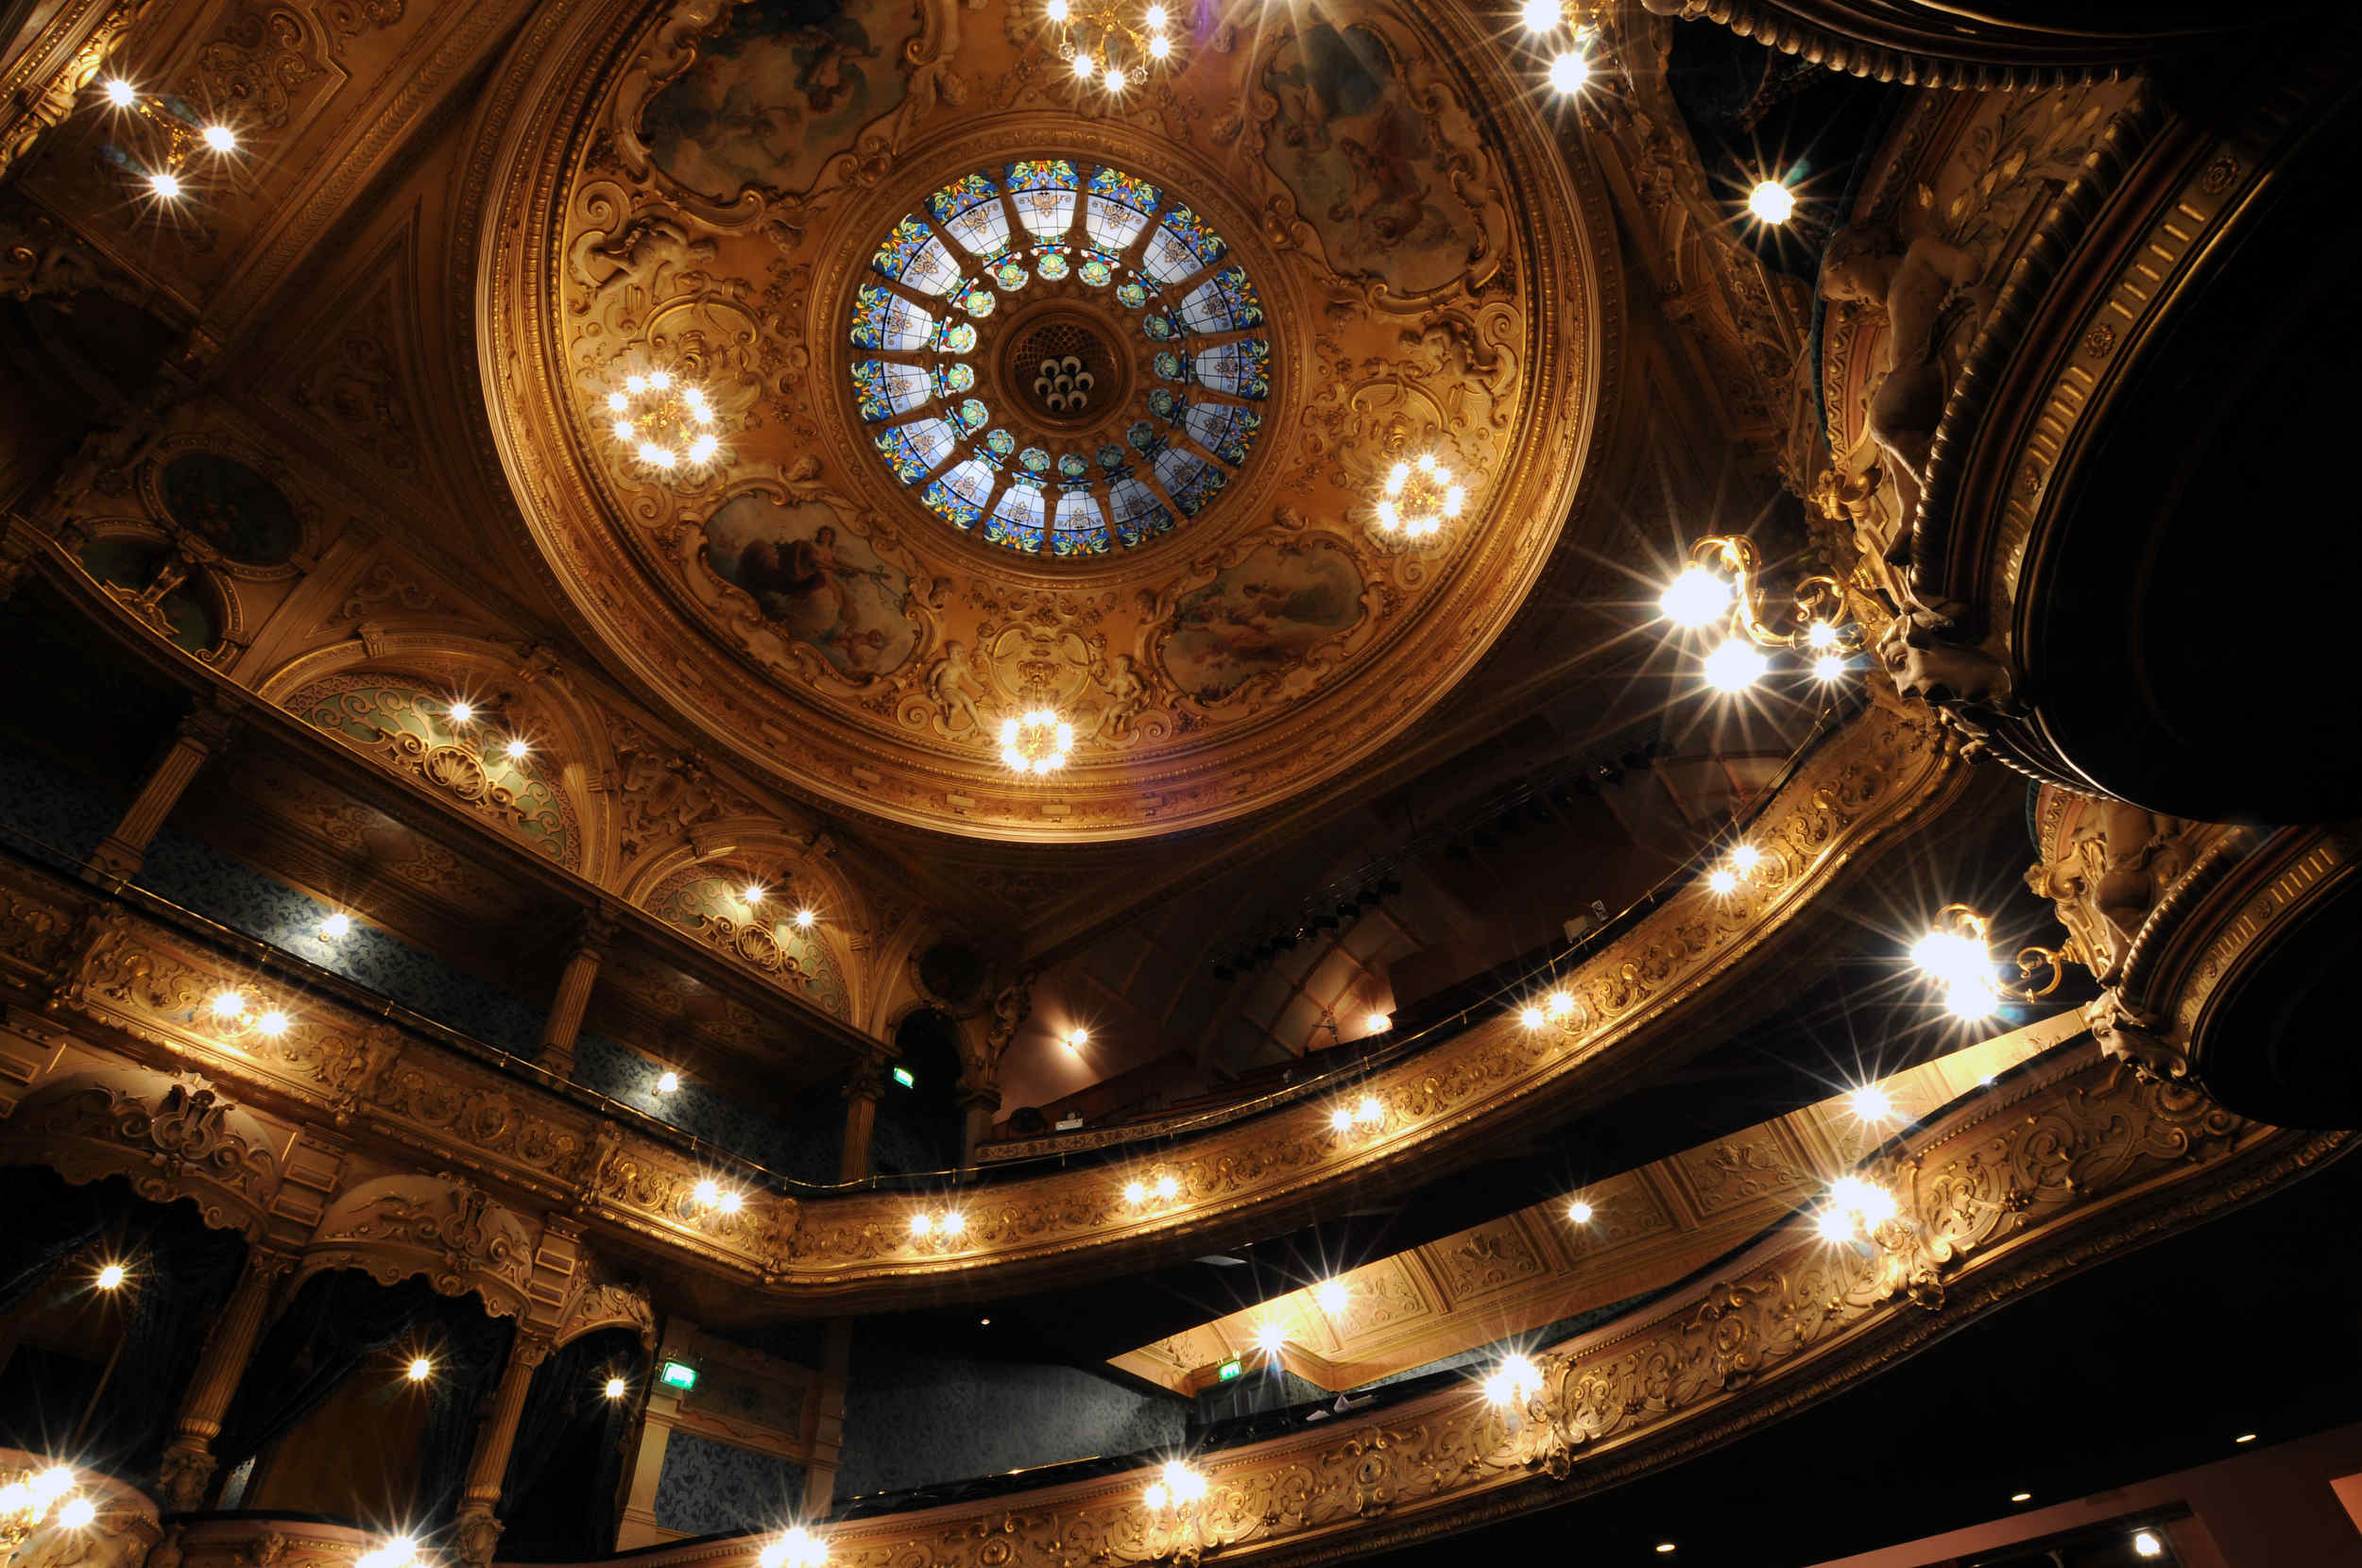 The interior of the restored Gaiety Theatre, designed by Frank Matcham and built in 1899